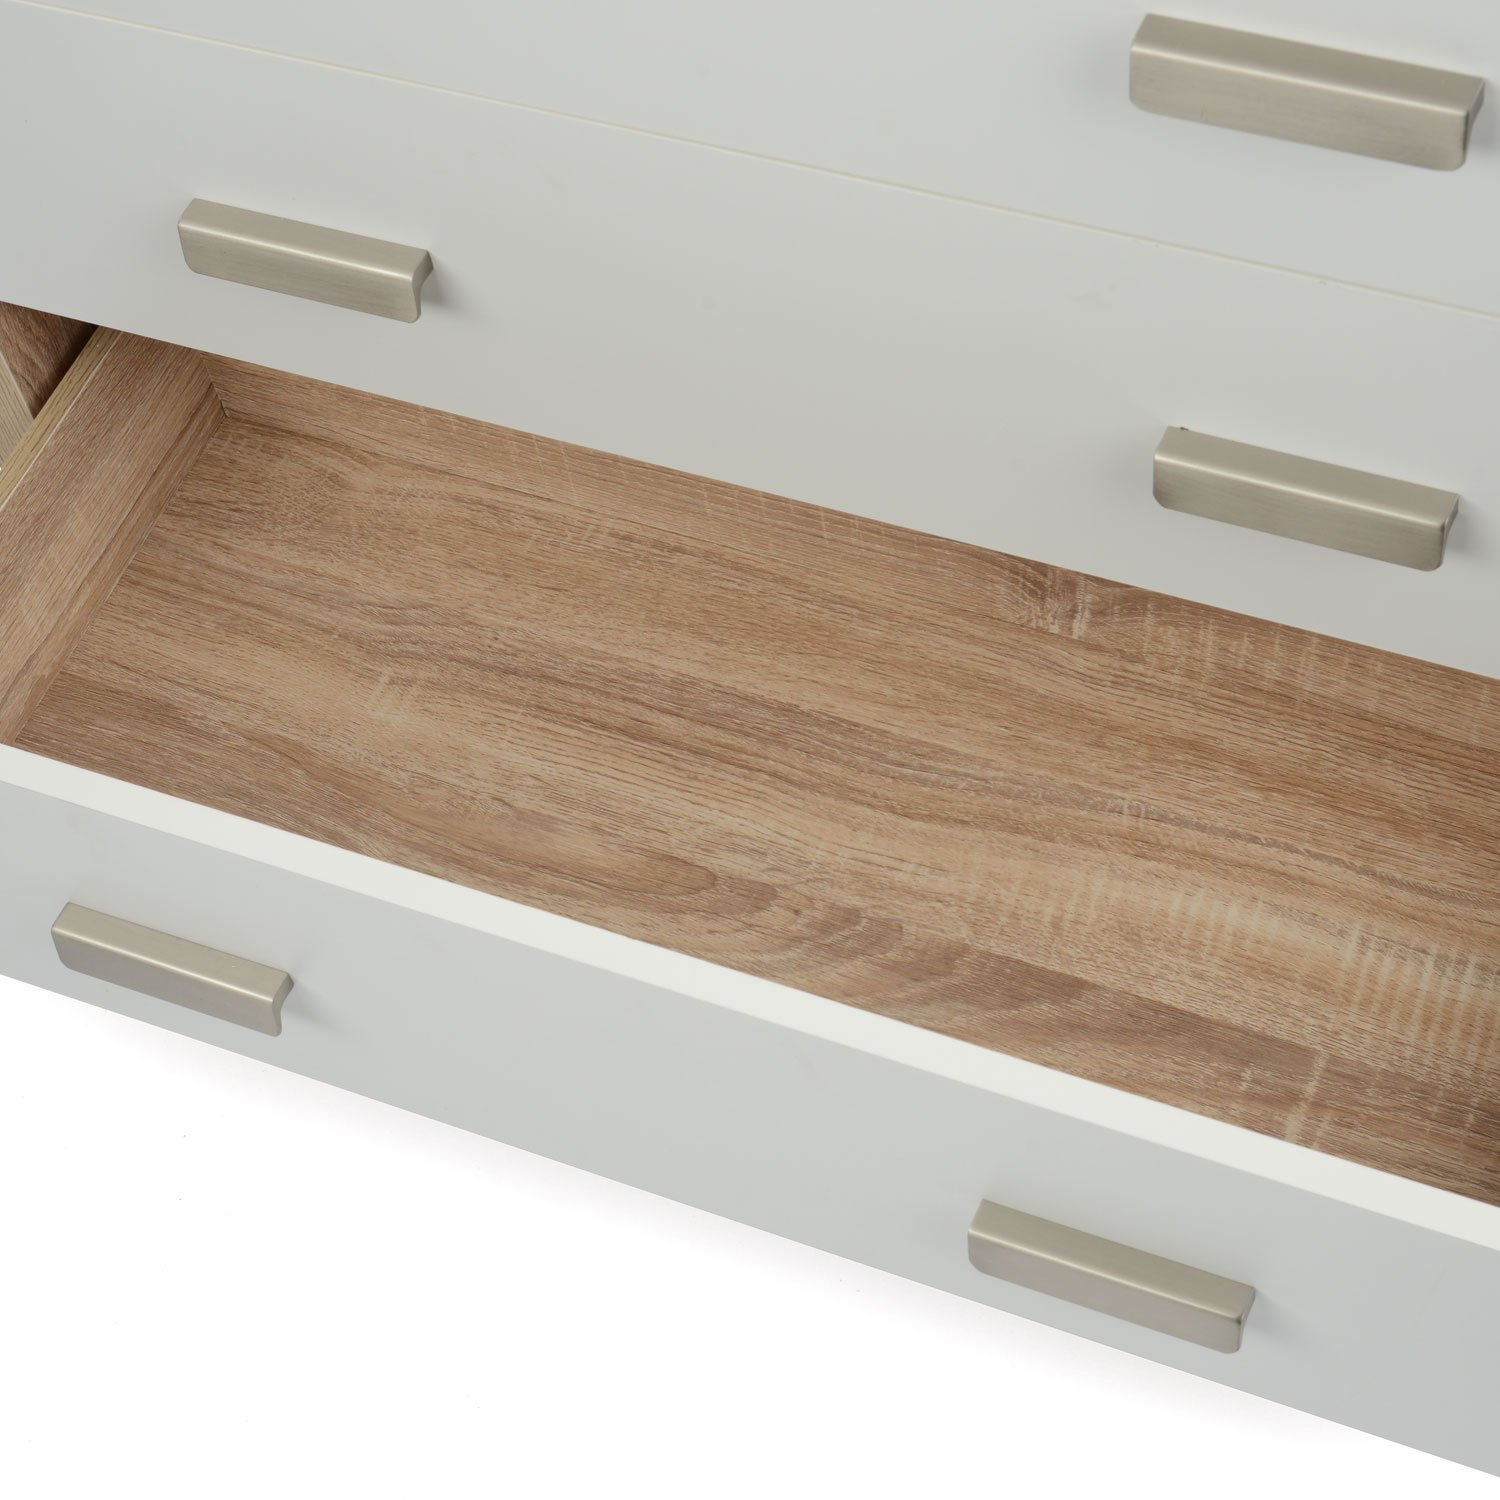 bianco oak effect white wood  drawer chest of drawers modern  - bianco oak effect white wood  drawer chest of drawers modern bedroomfurniture amazoncouk kitchen  home